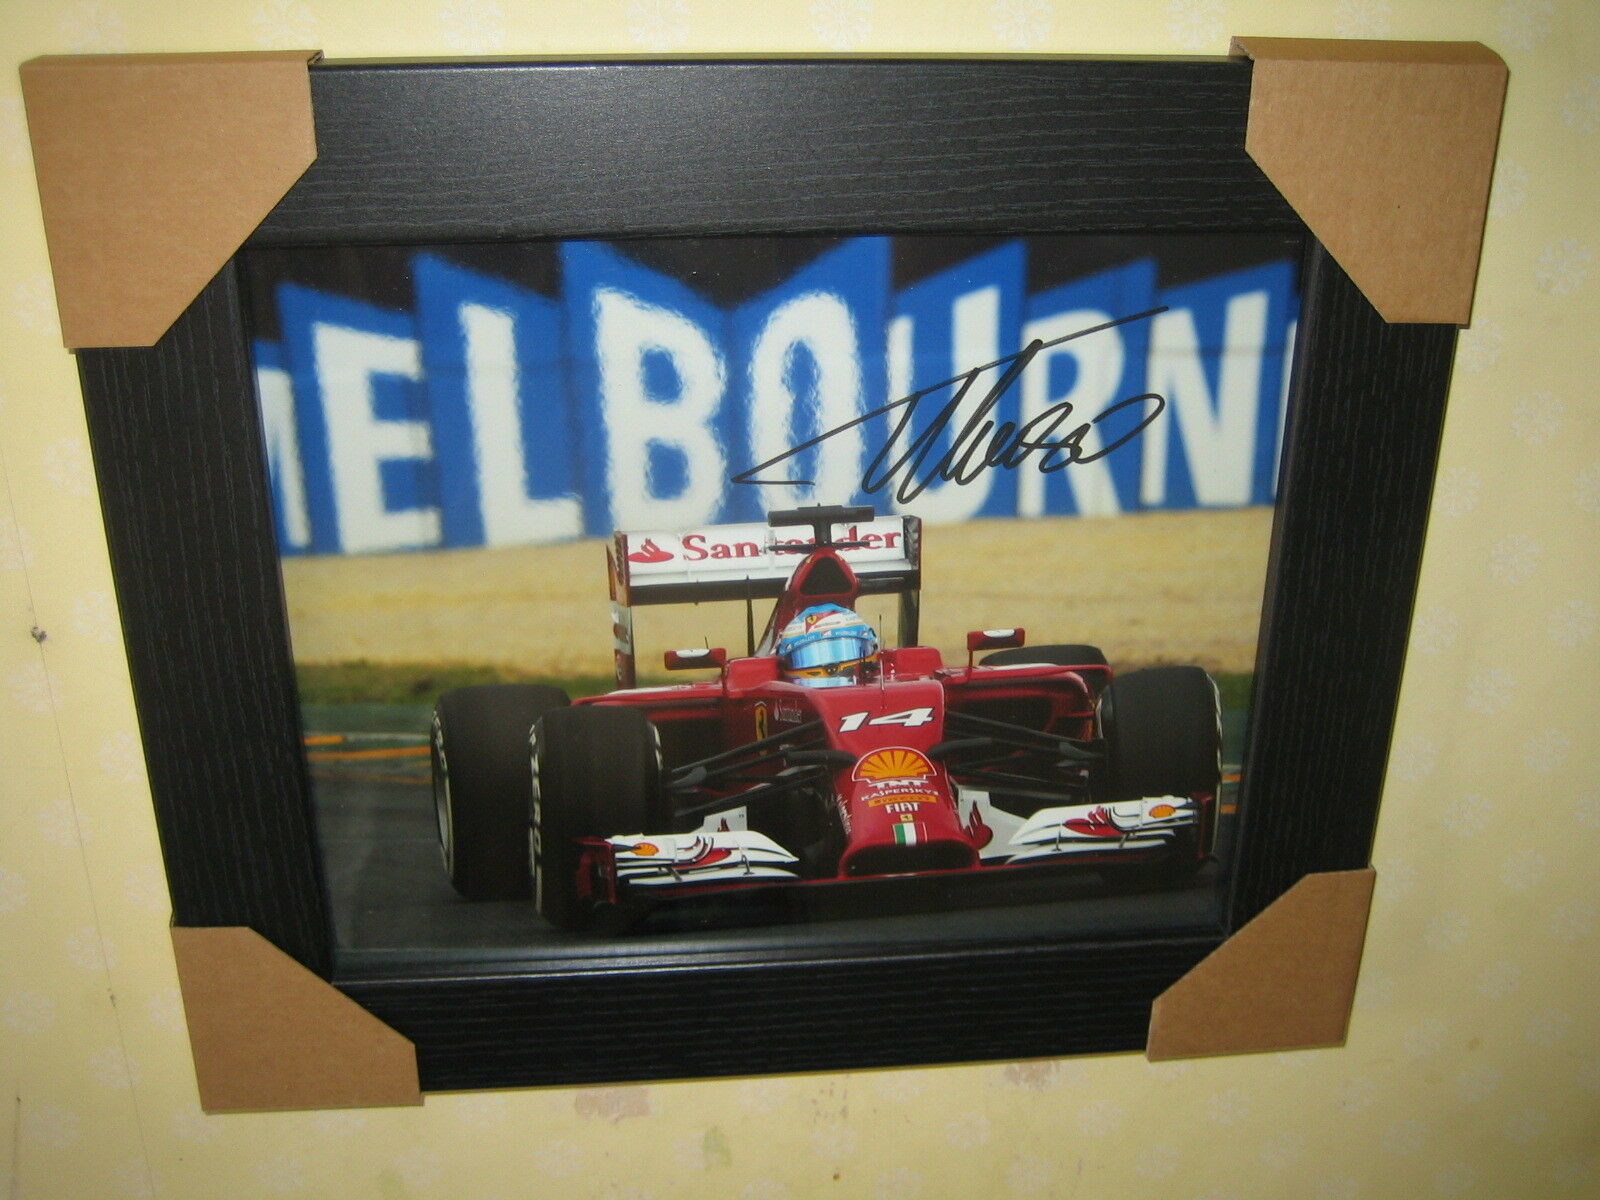 Fernando Alonso Excellent Signed Photograph (10x8) Framed With CoA